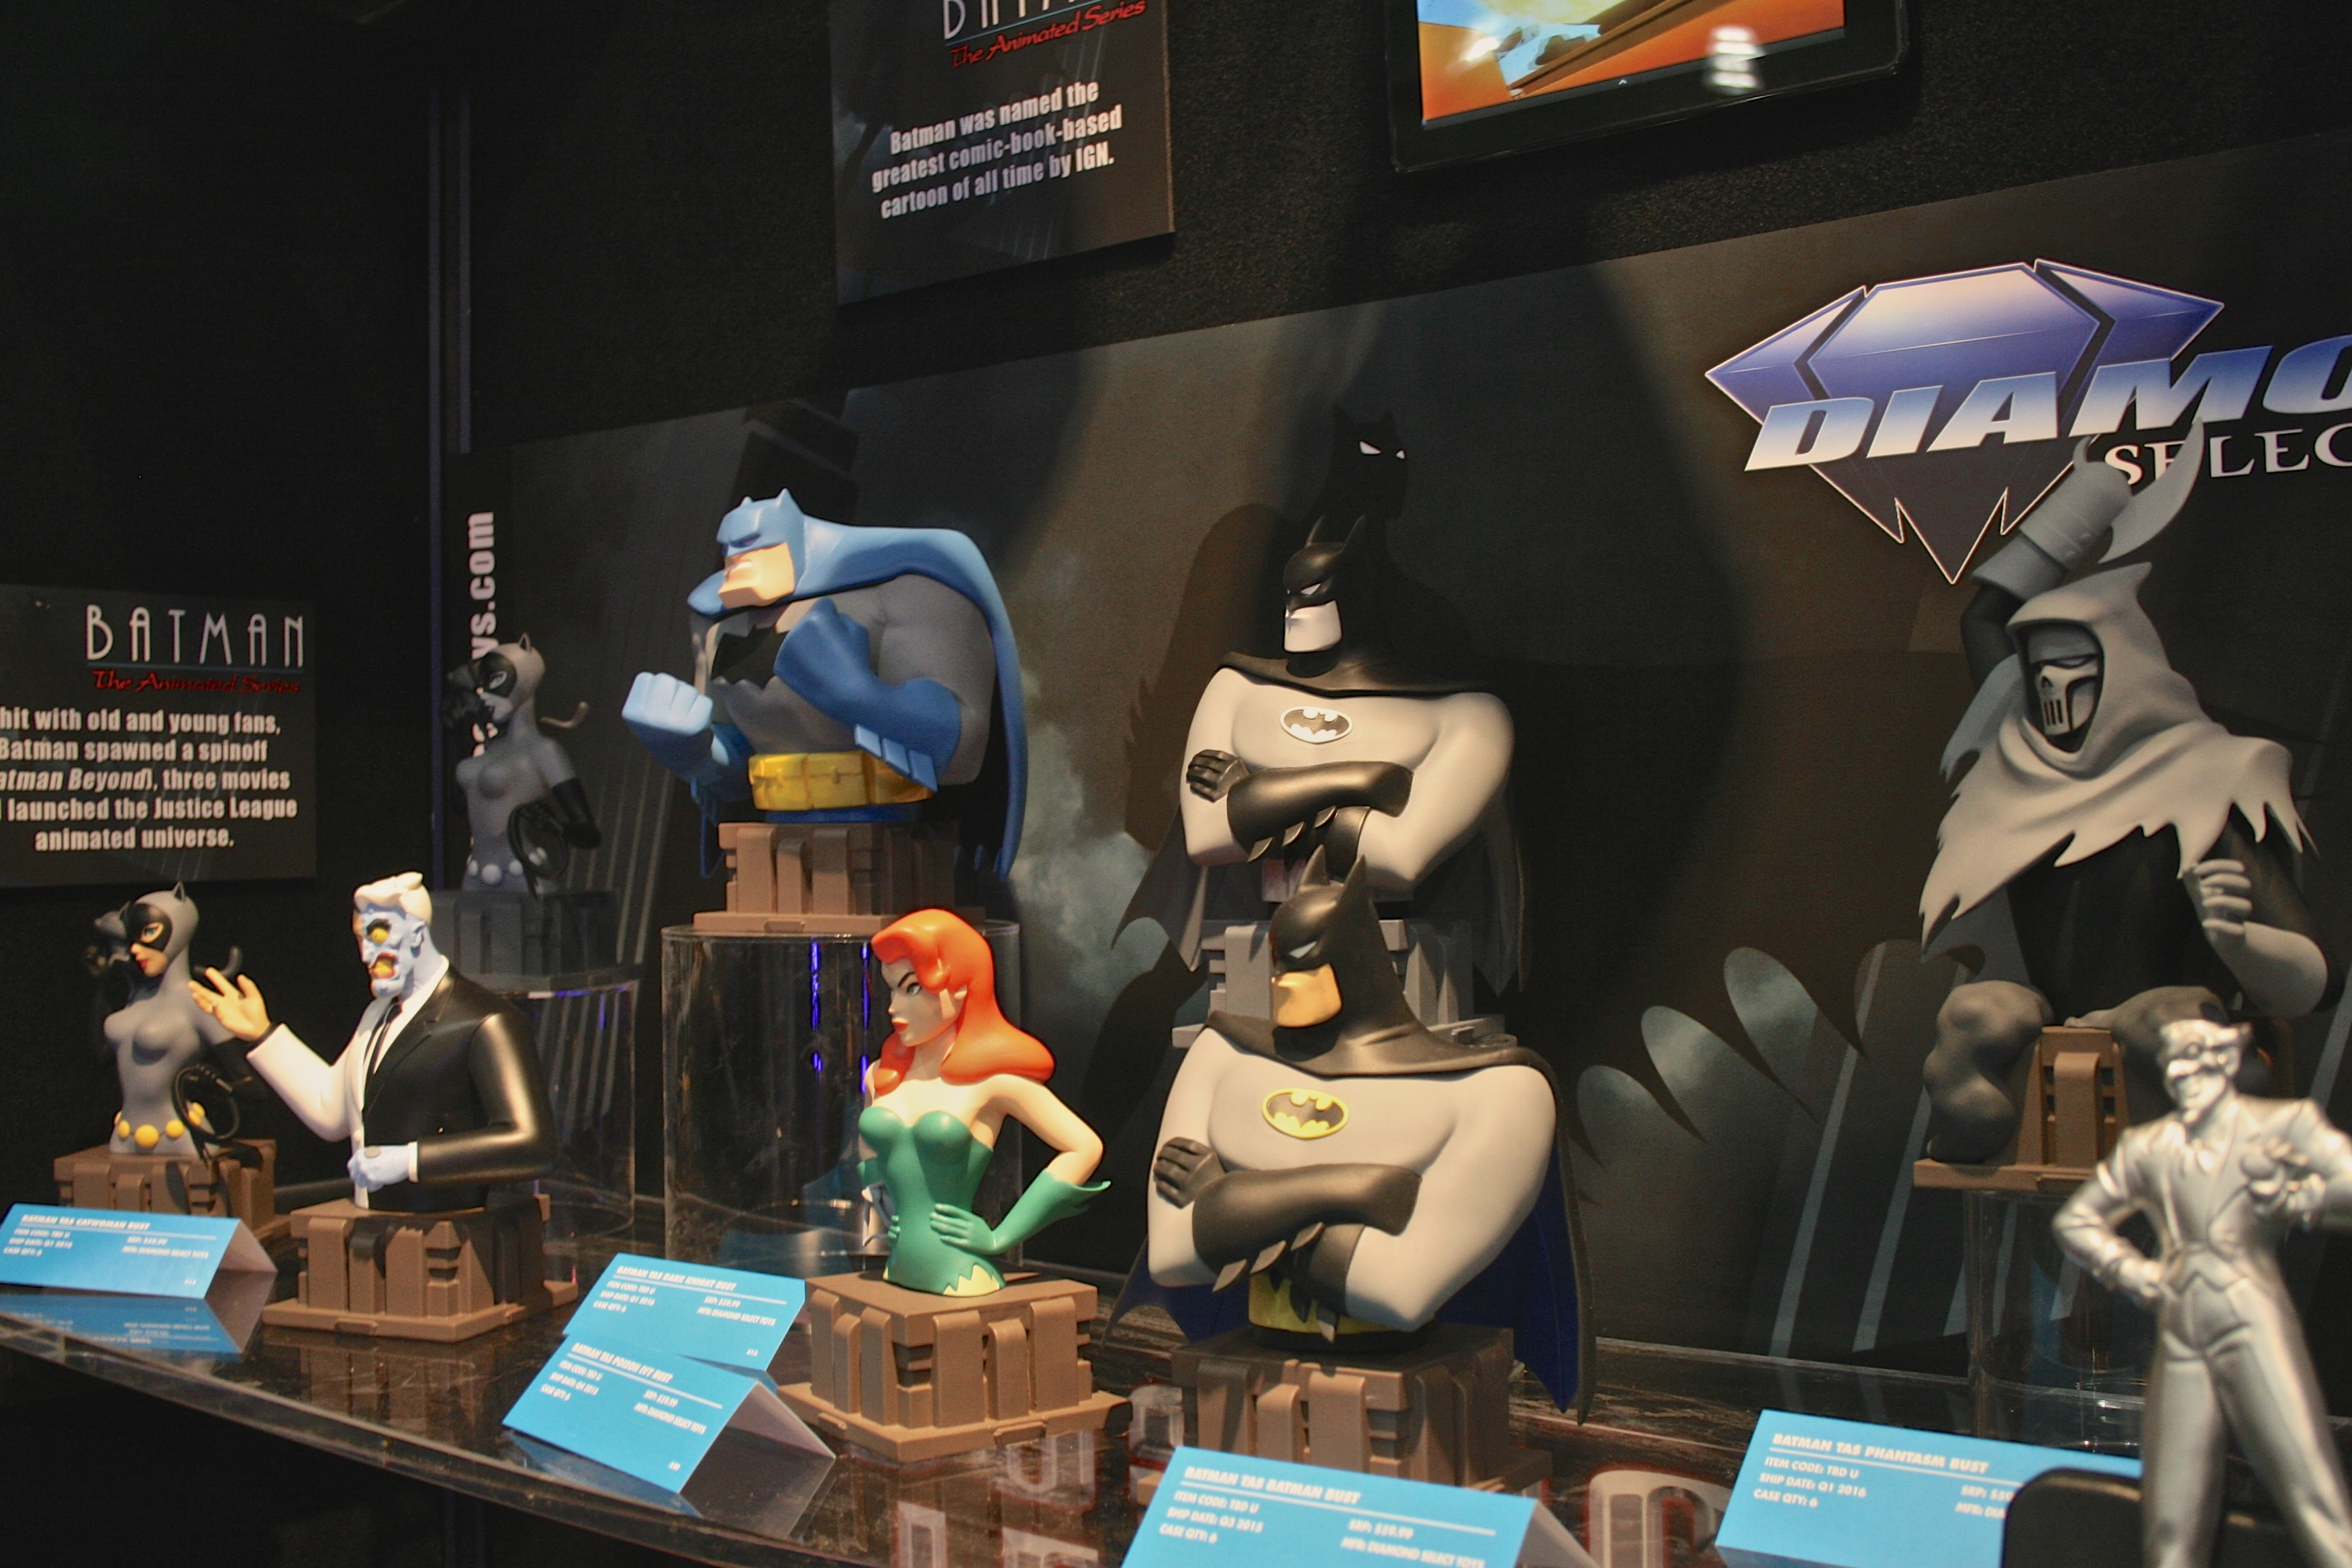 Back to DC, Batman: The Animated Series gets the bust treatment!